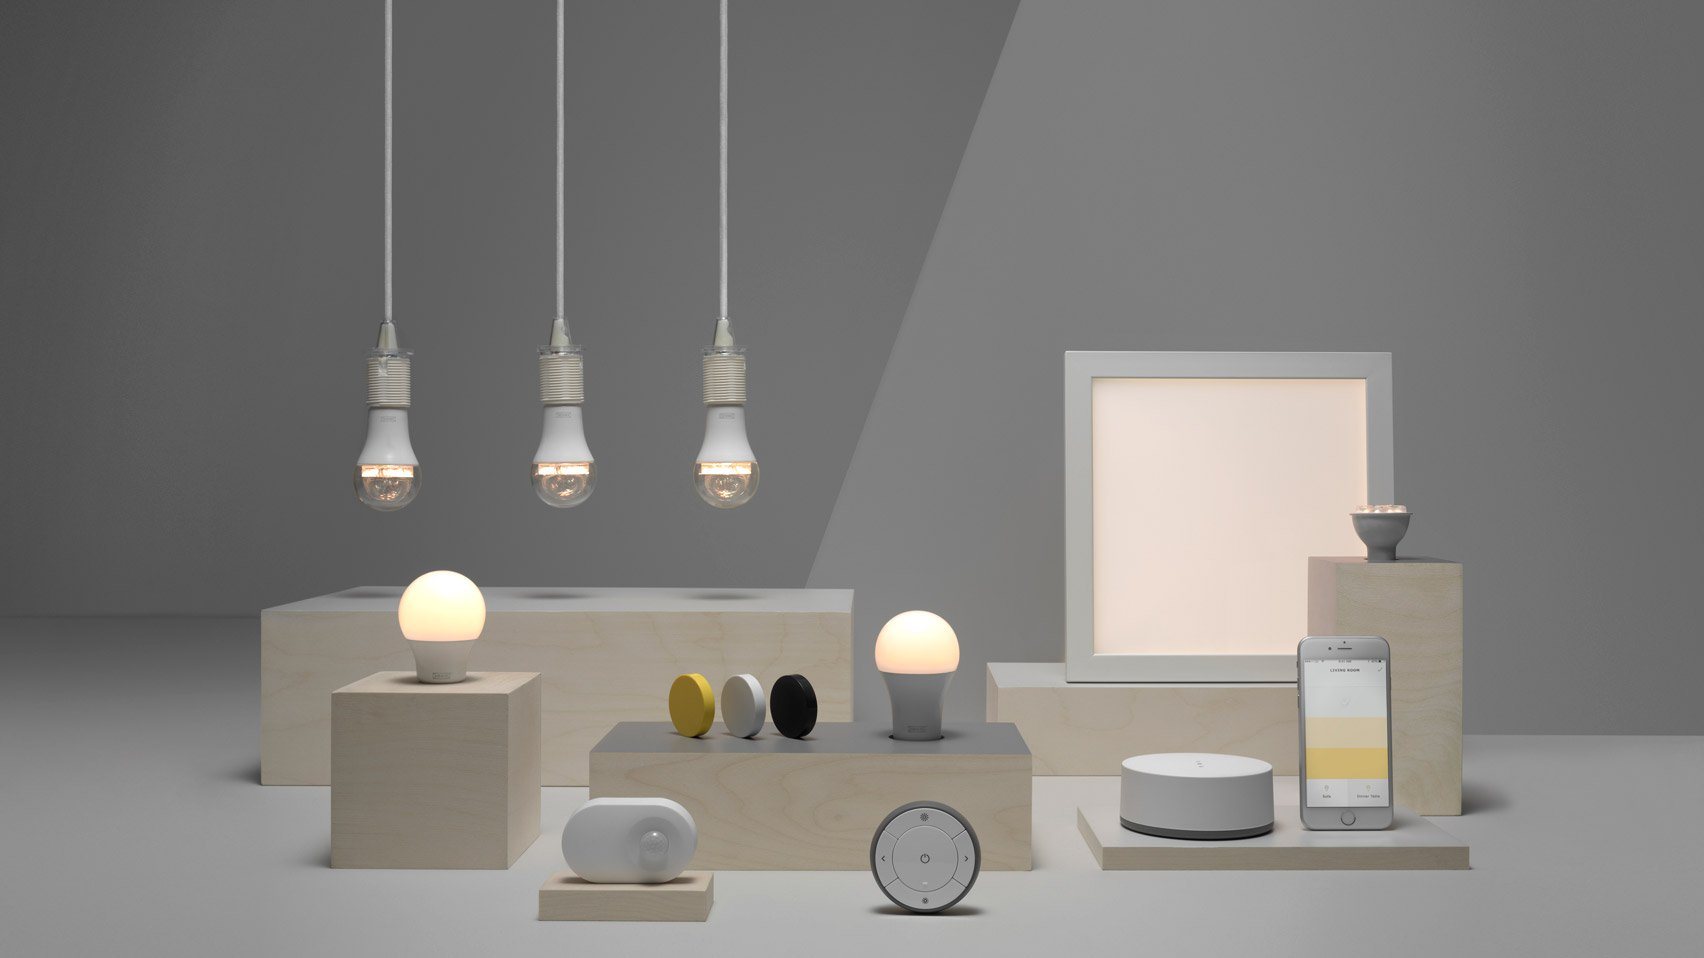 Ikea tr dfri smart lights will get support for assistant and alexa later this year - Illuminazione design low cost ...